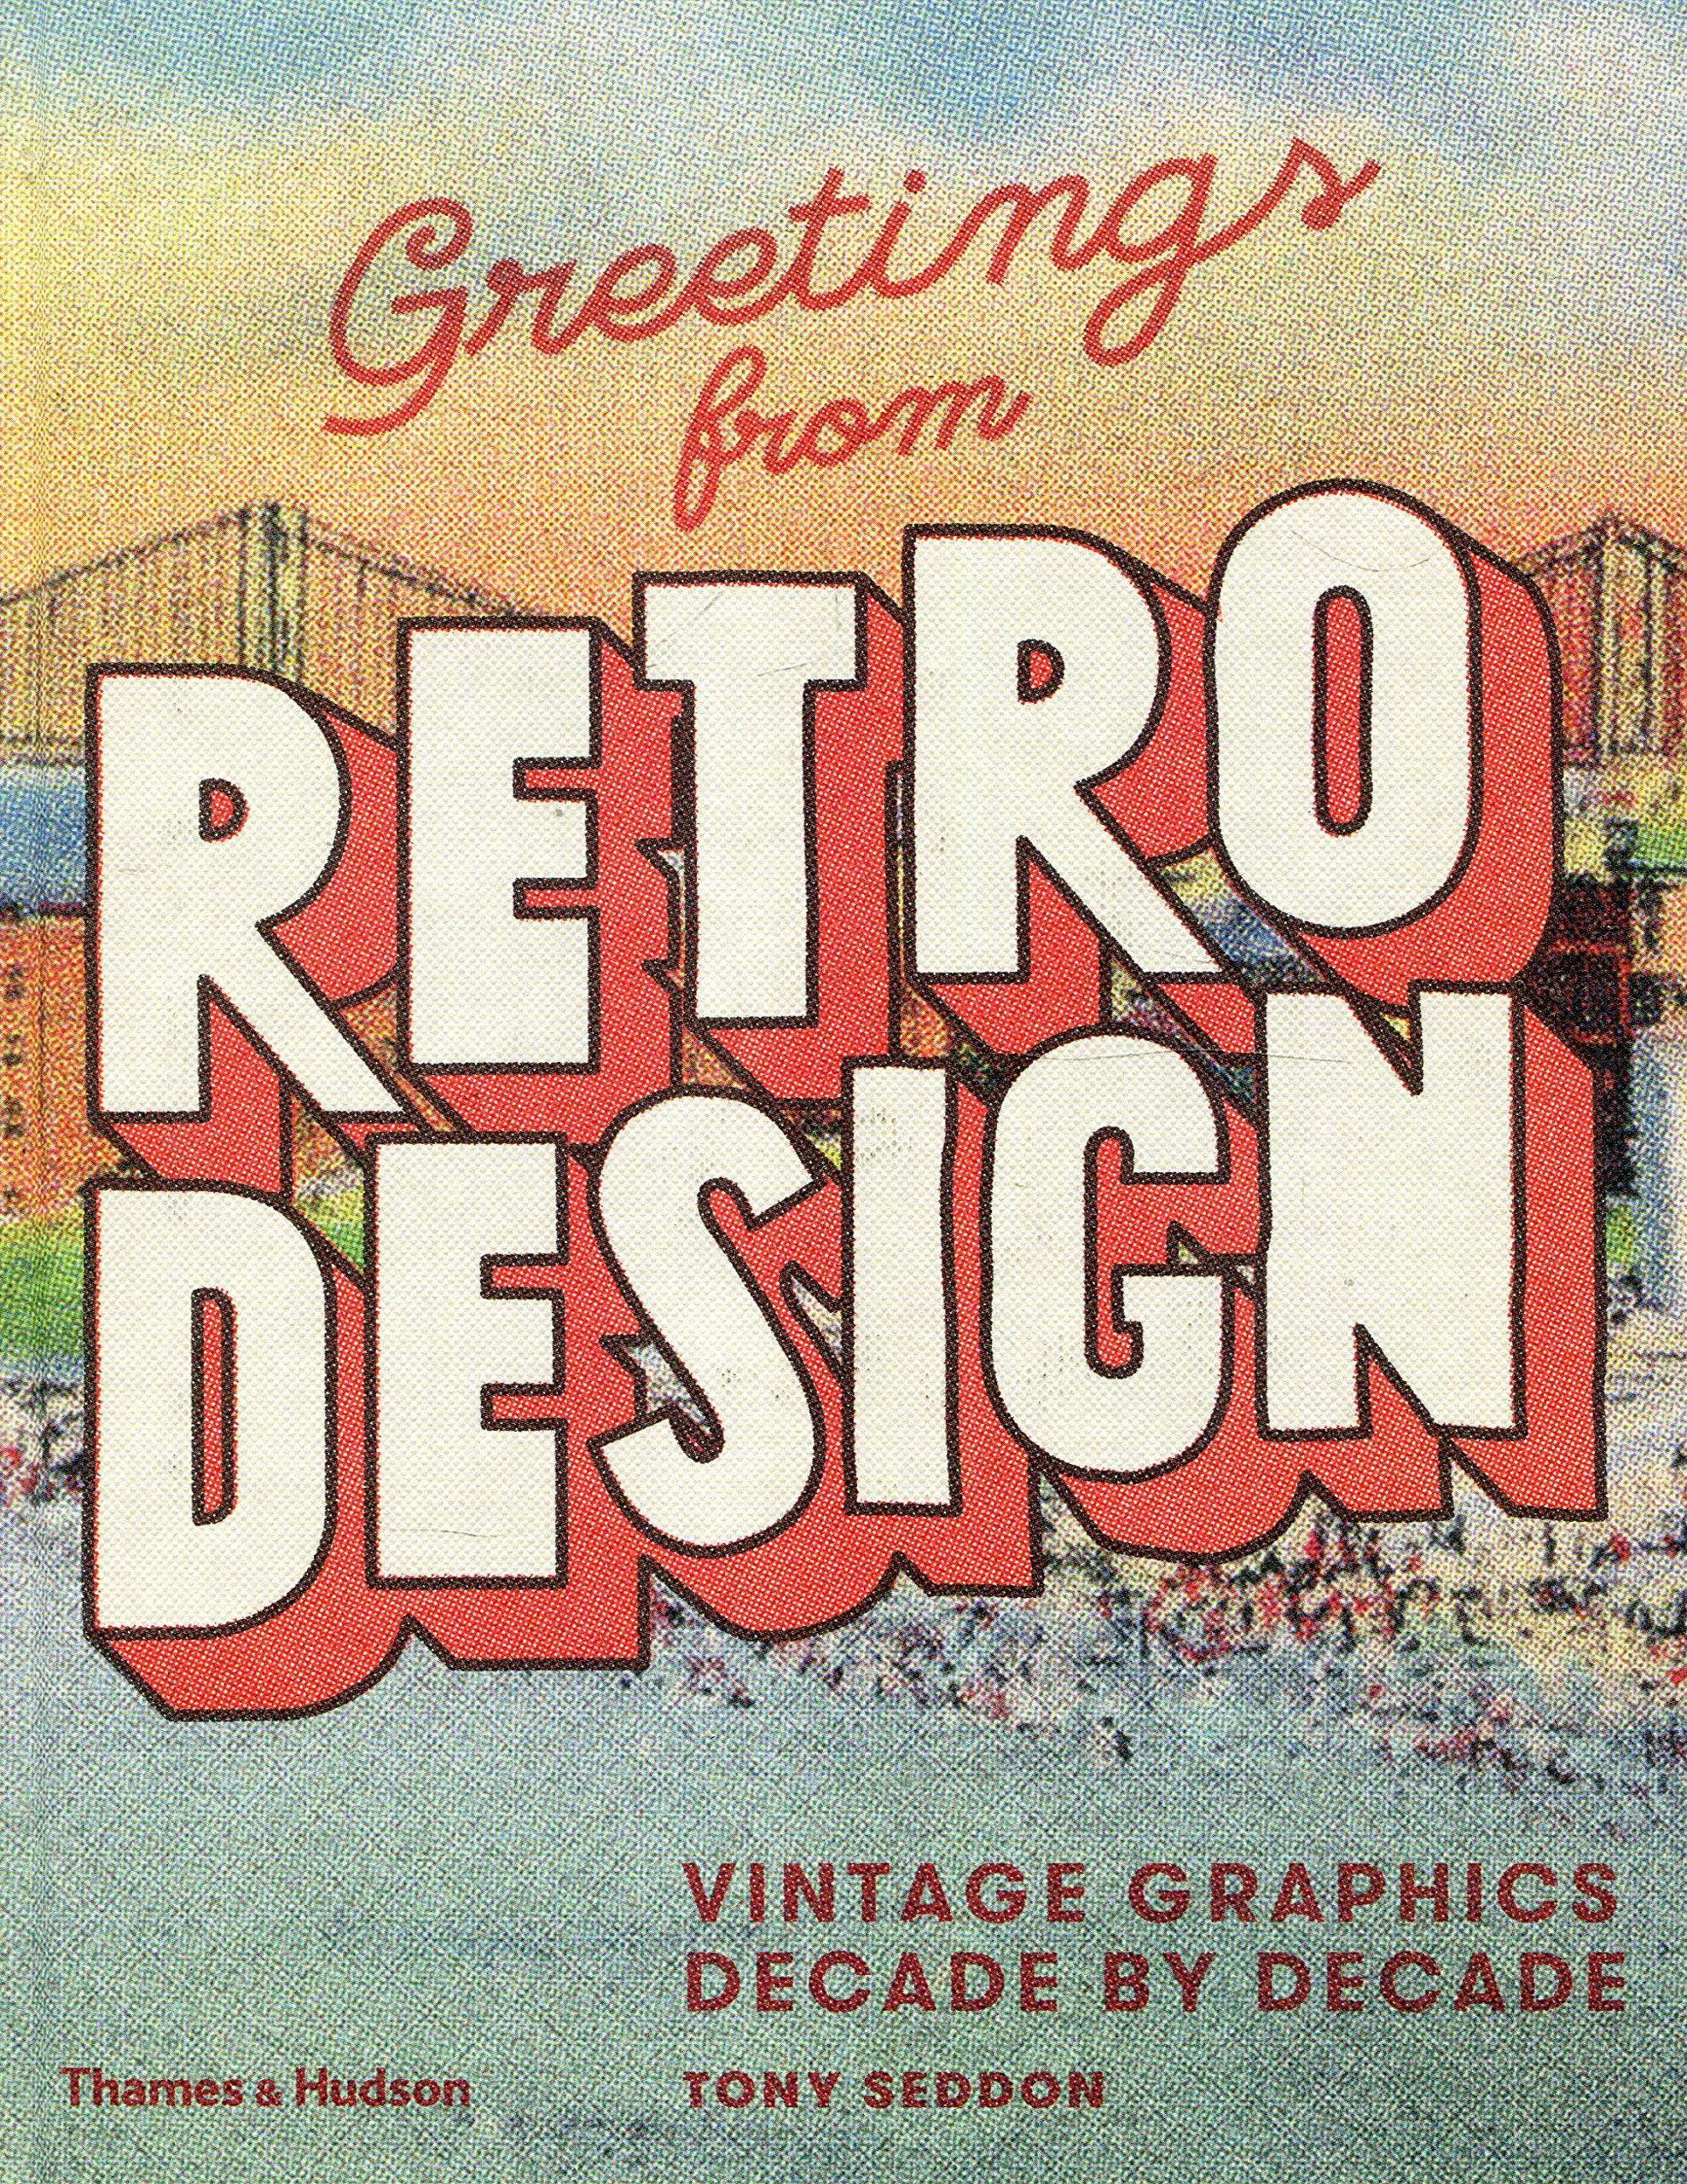 Greetings from Retro Design: Vintage Graphics Decade by Decade: Tony